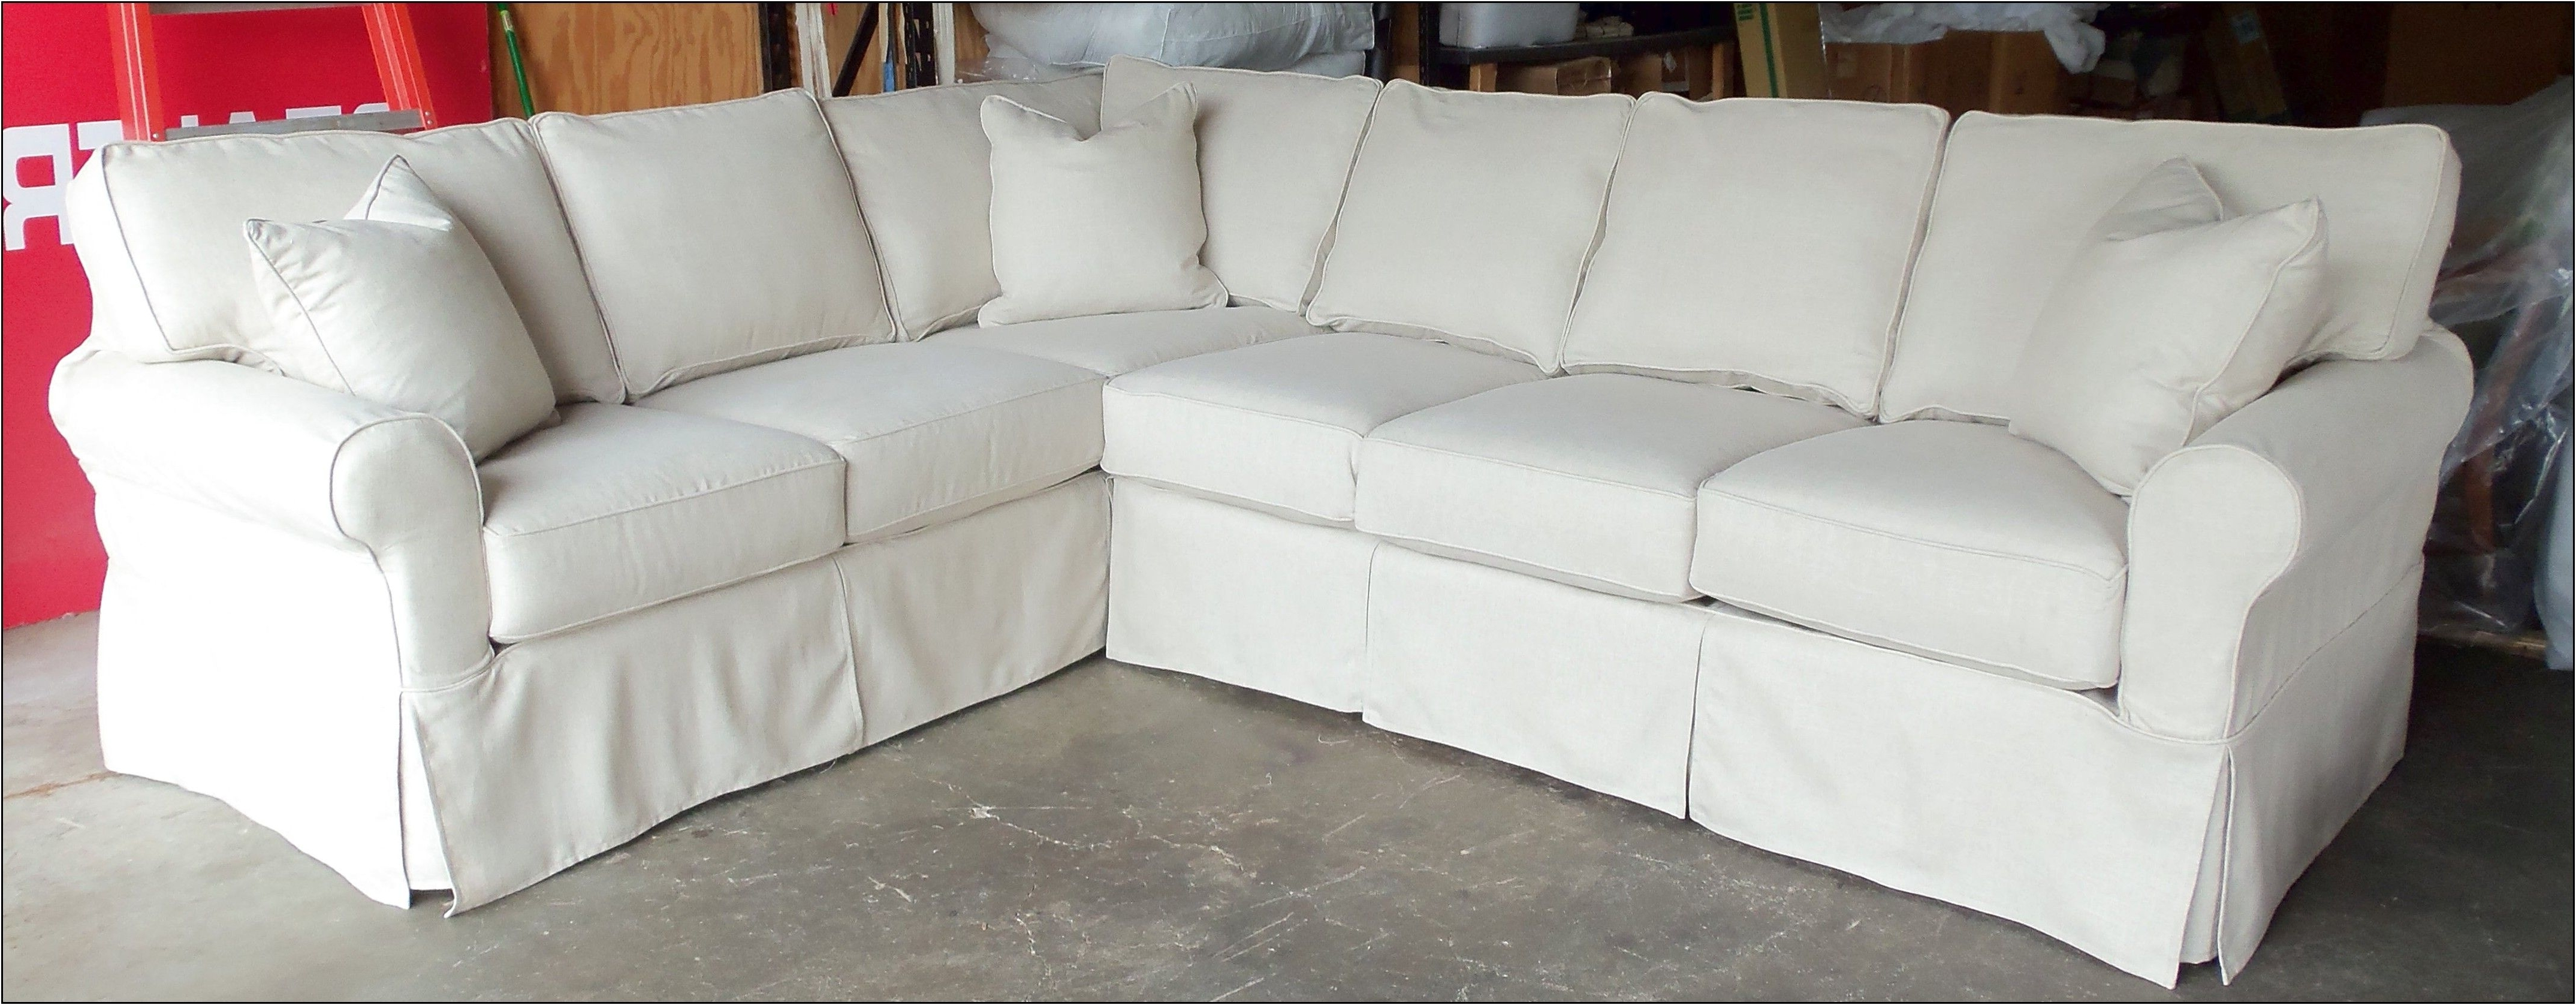 Popular Cool Sectional Couch Cover , Best Sectional Couch Cover 72 For Intended For Slipcovers For Sectional Sofas With Chaise (View 7 of 15)